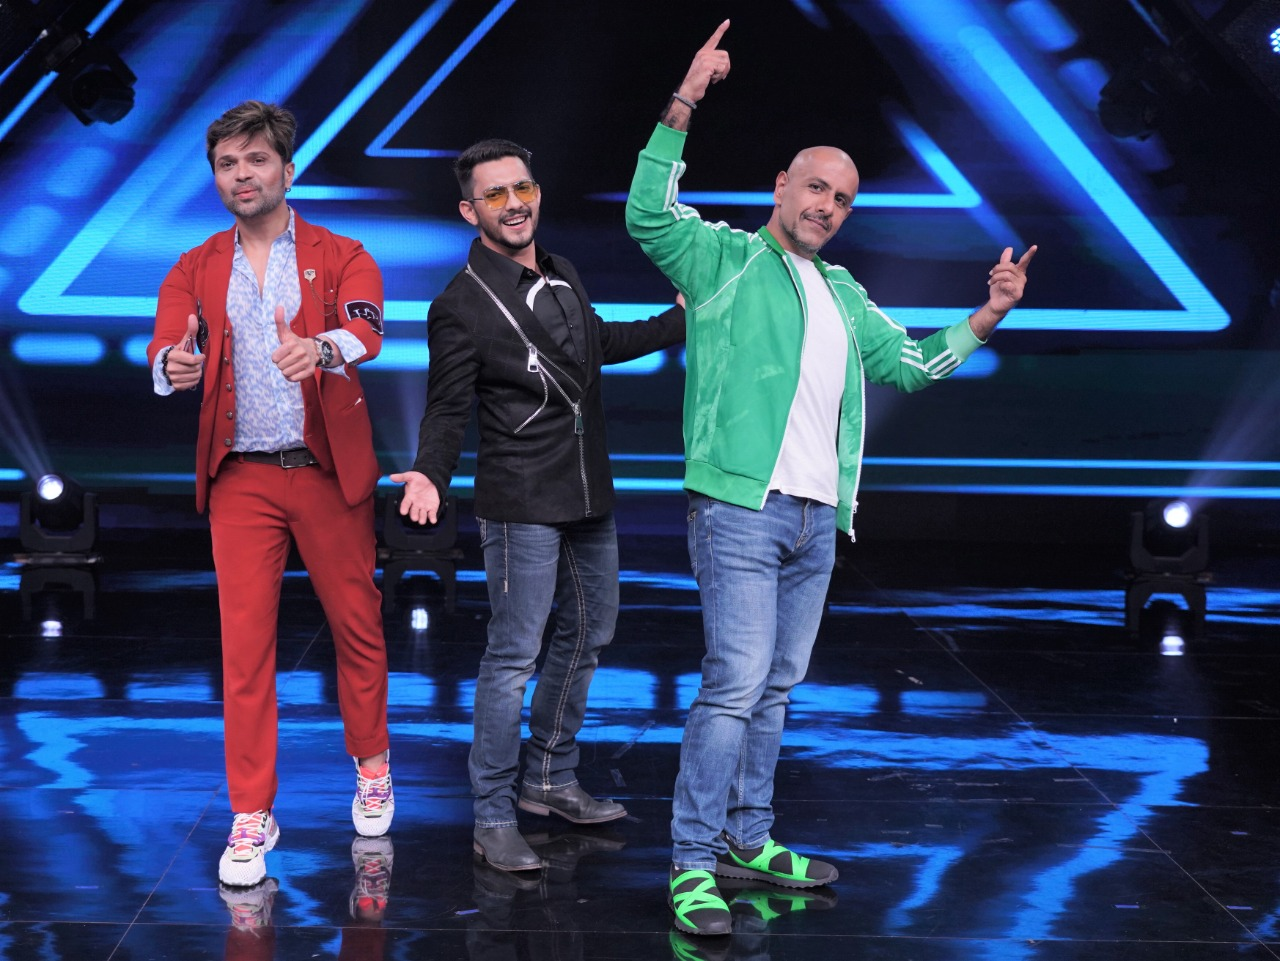 Indian Idol & India's Best Dancer crossover